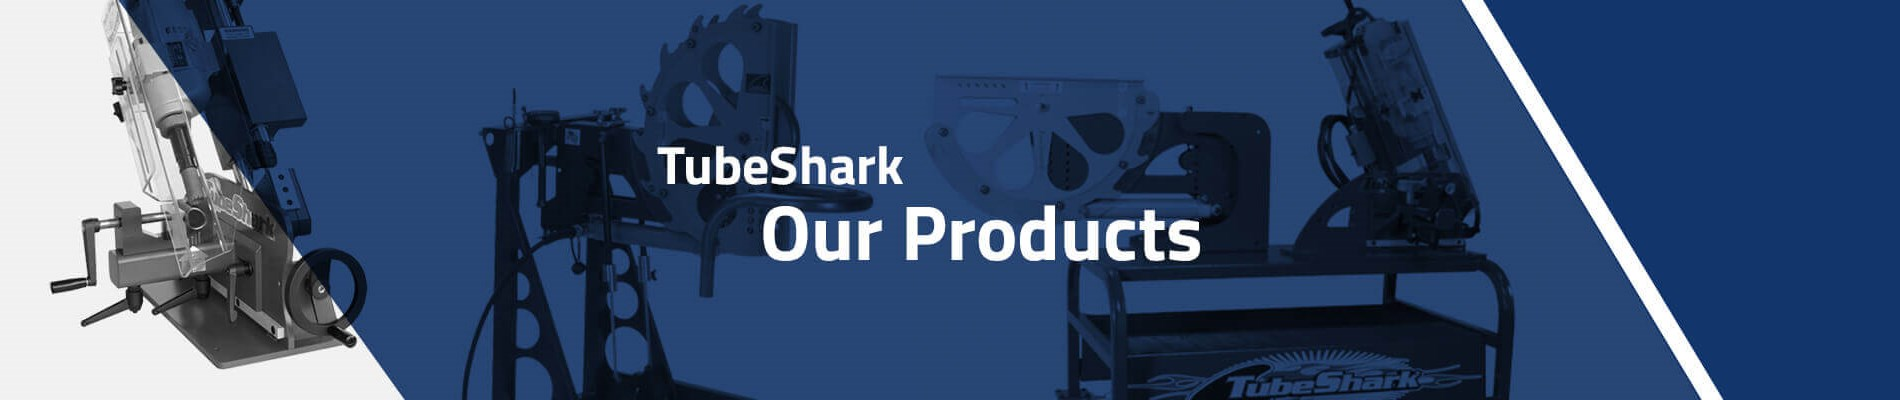 TubeShark Products